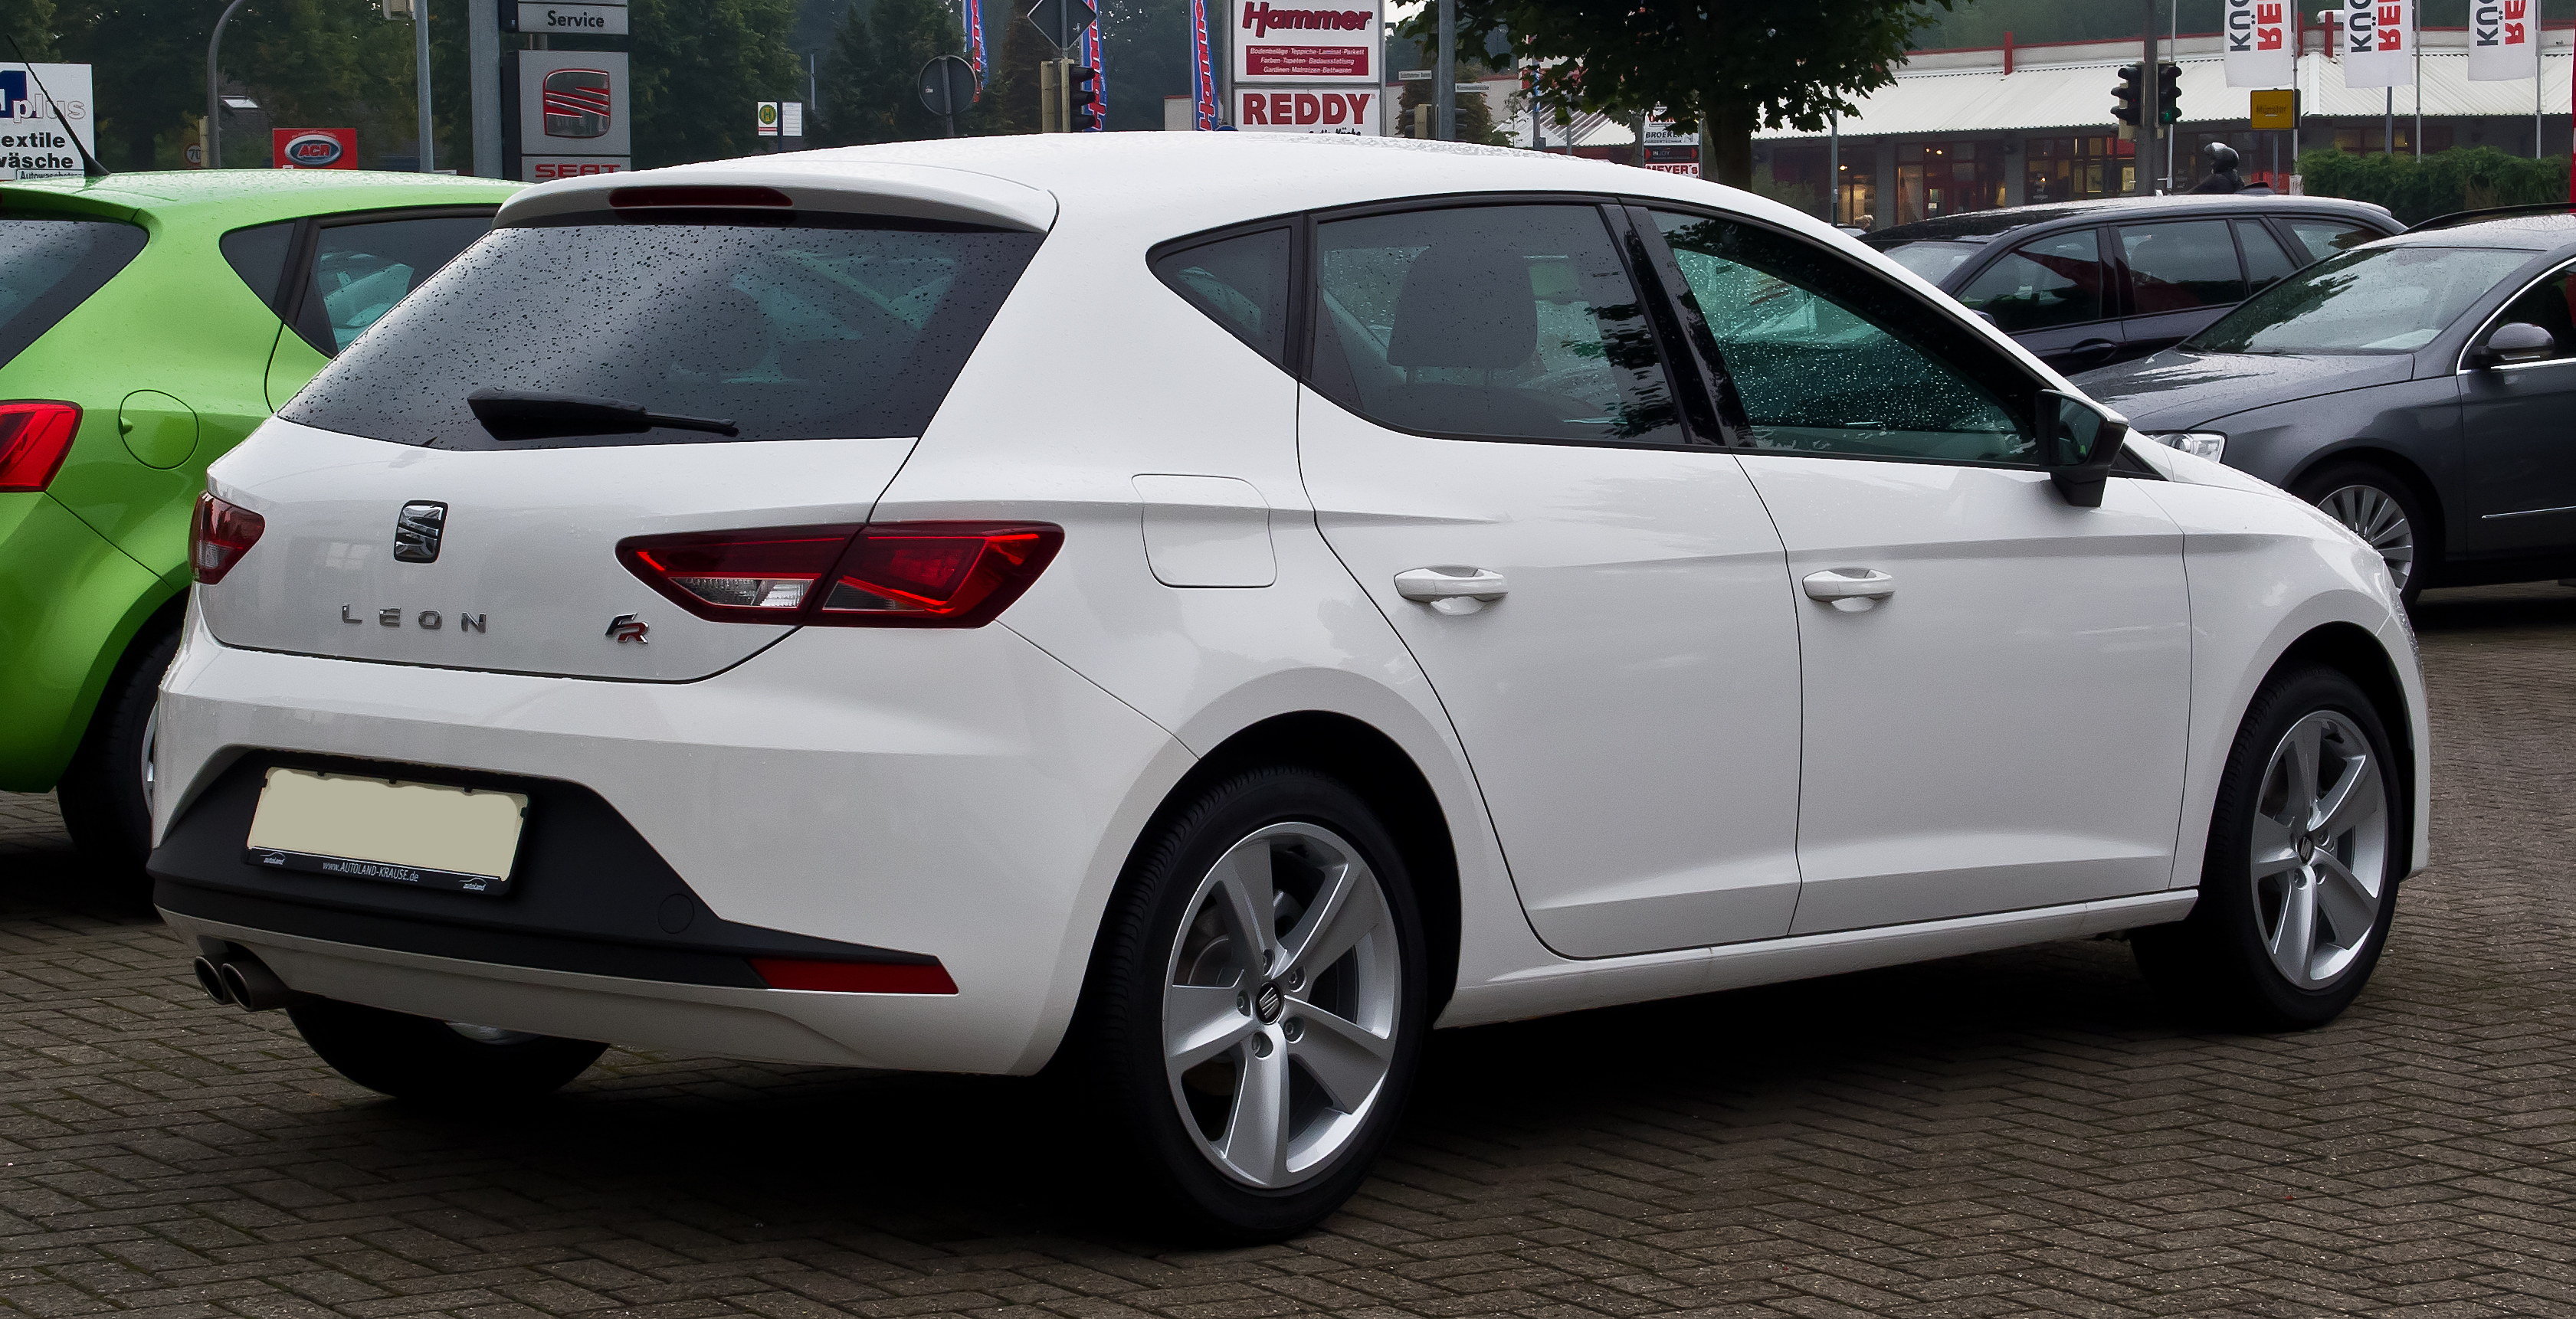 file seat leon 1 4 tsi start stop fr iii heckansicht 7 september 2013 m. Black Bedroom Furniture Sets. Home Design Ideas